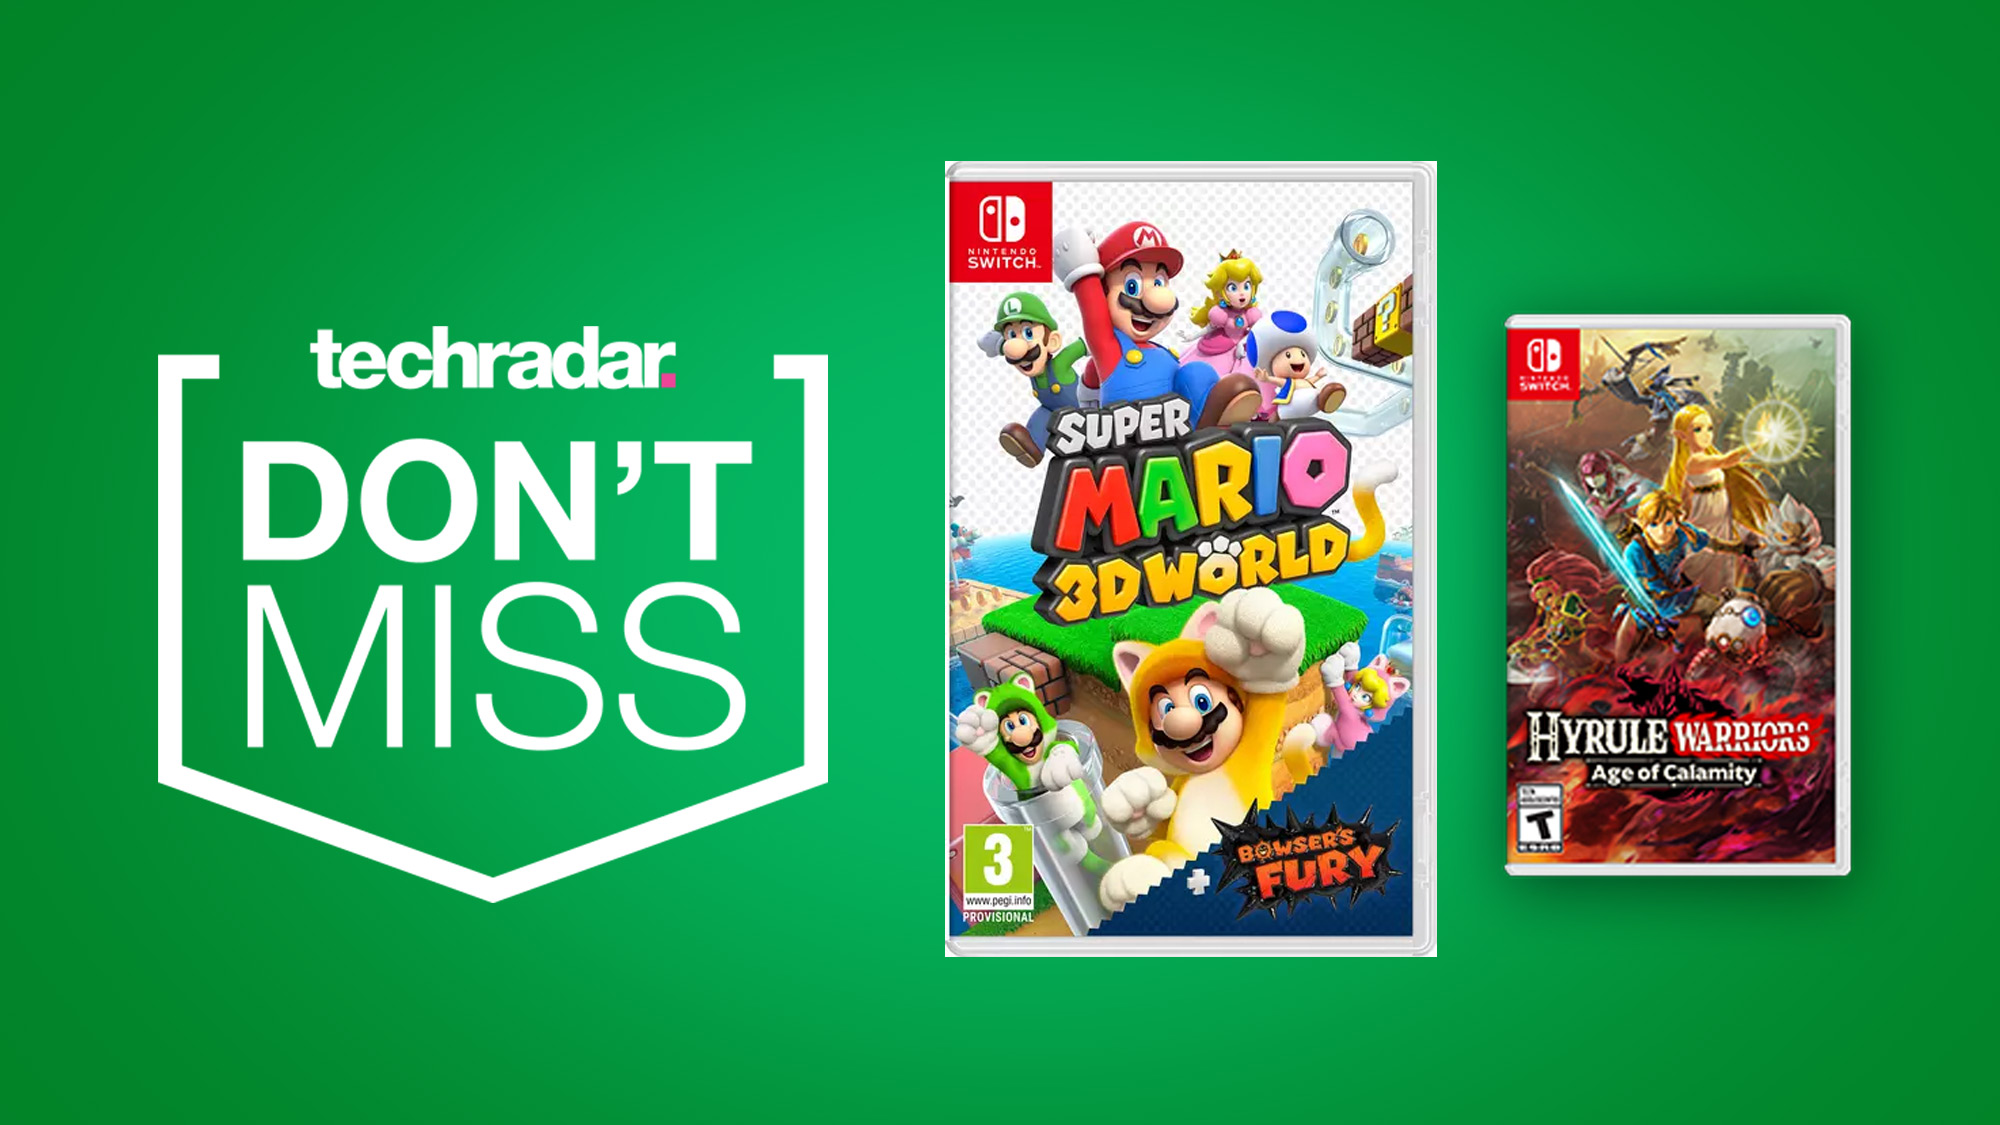 Super Mario 3d World And Hyrule Warriors Age Of Calamity Already Discounted With Nintendo Switch Pre Order Deals Techradar